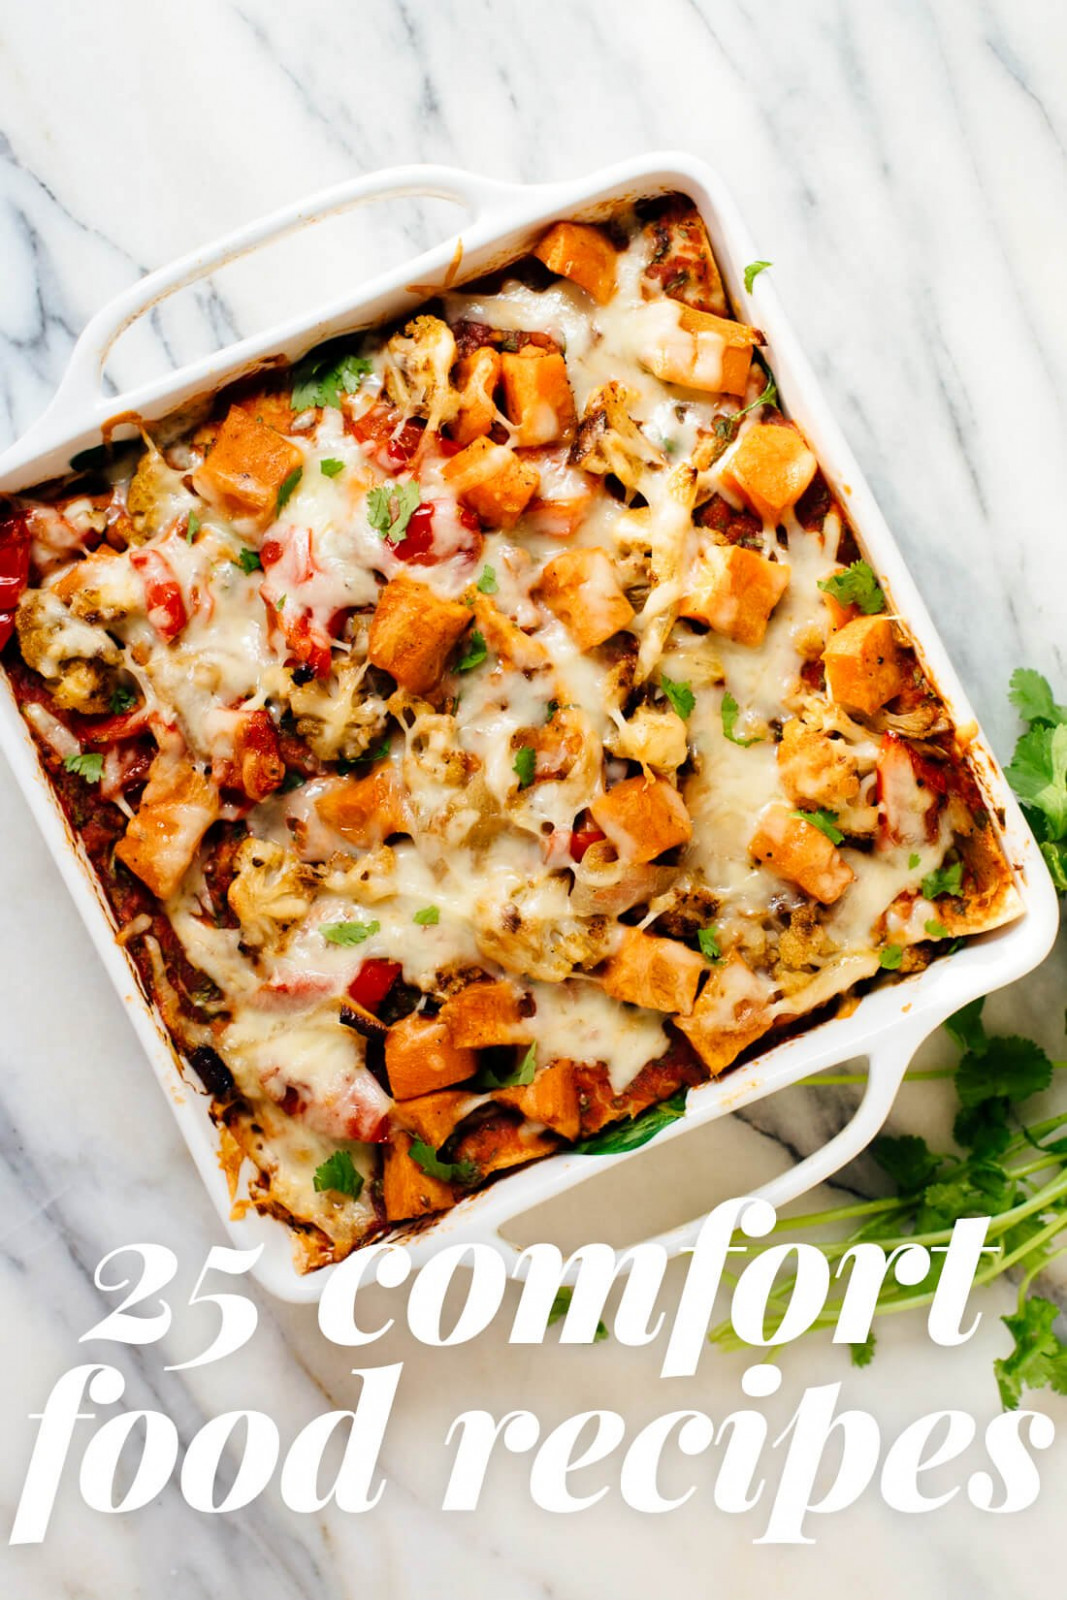 11 Healthy Comfort Food Recipes - Cookie and Kate - what is healthy recipes